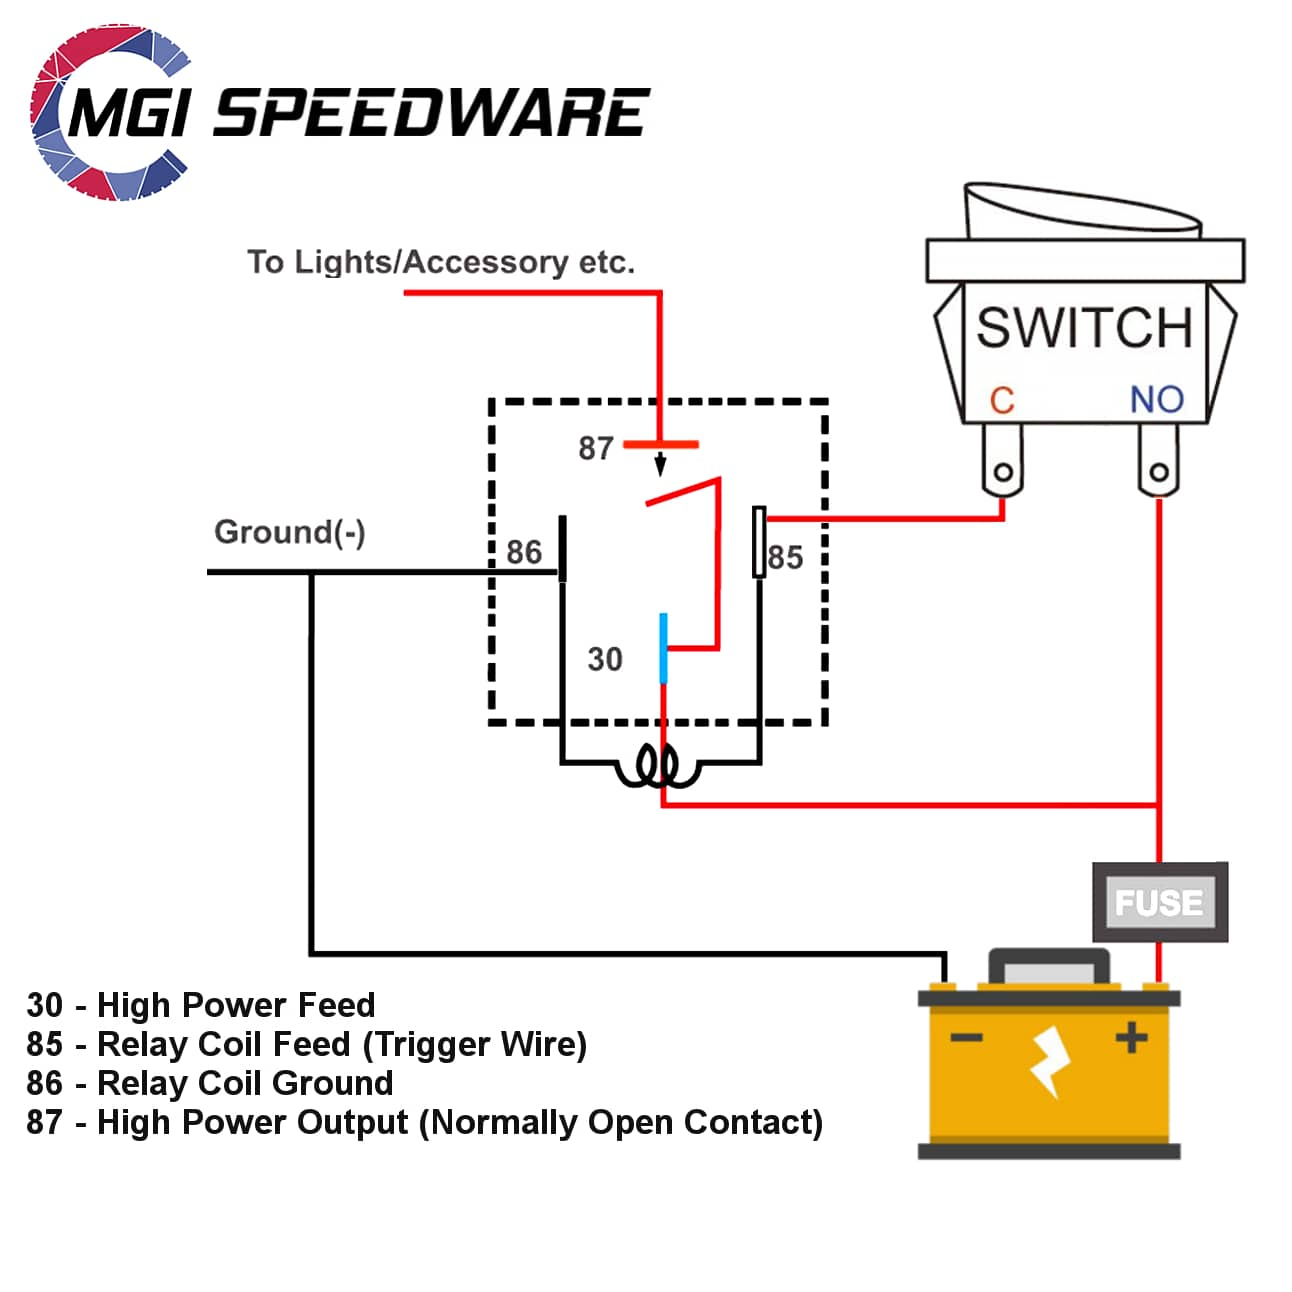 Automotive Fused Relay 40A SPST | MGI SpeedWareMGI SpeedWare